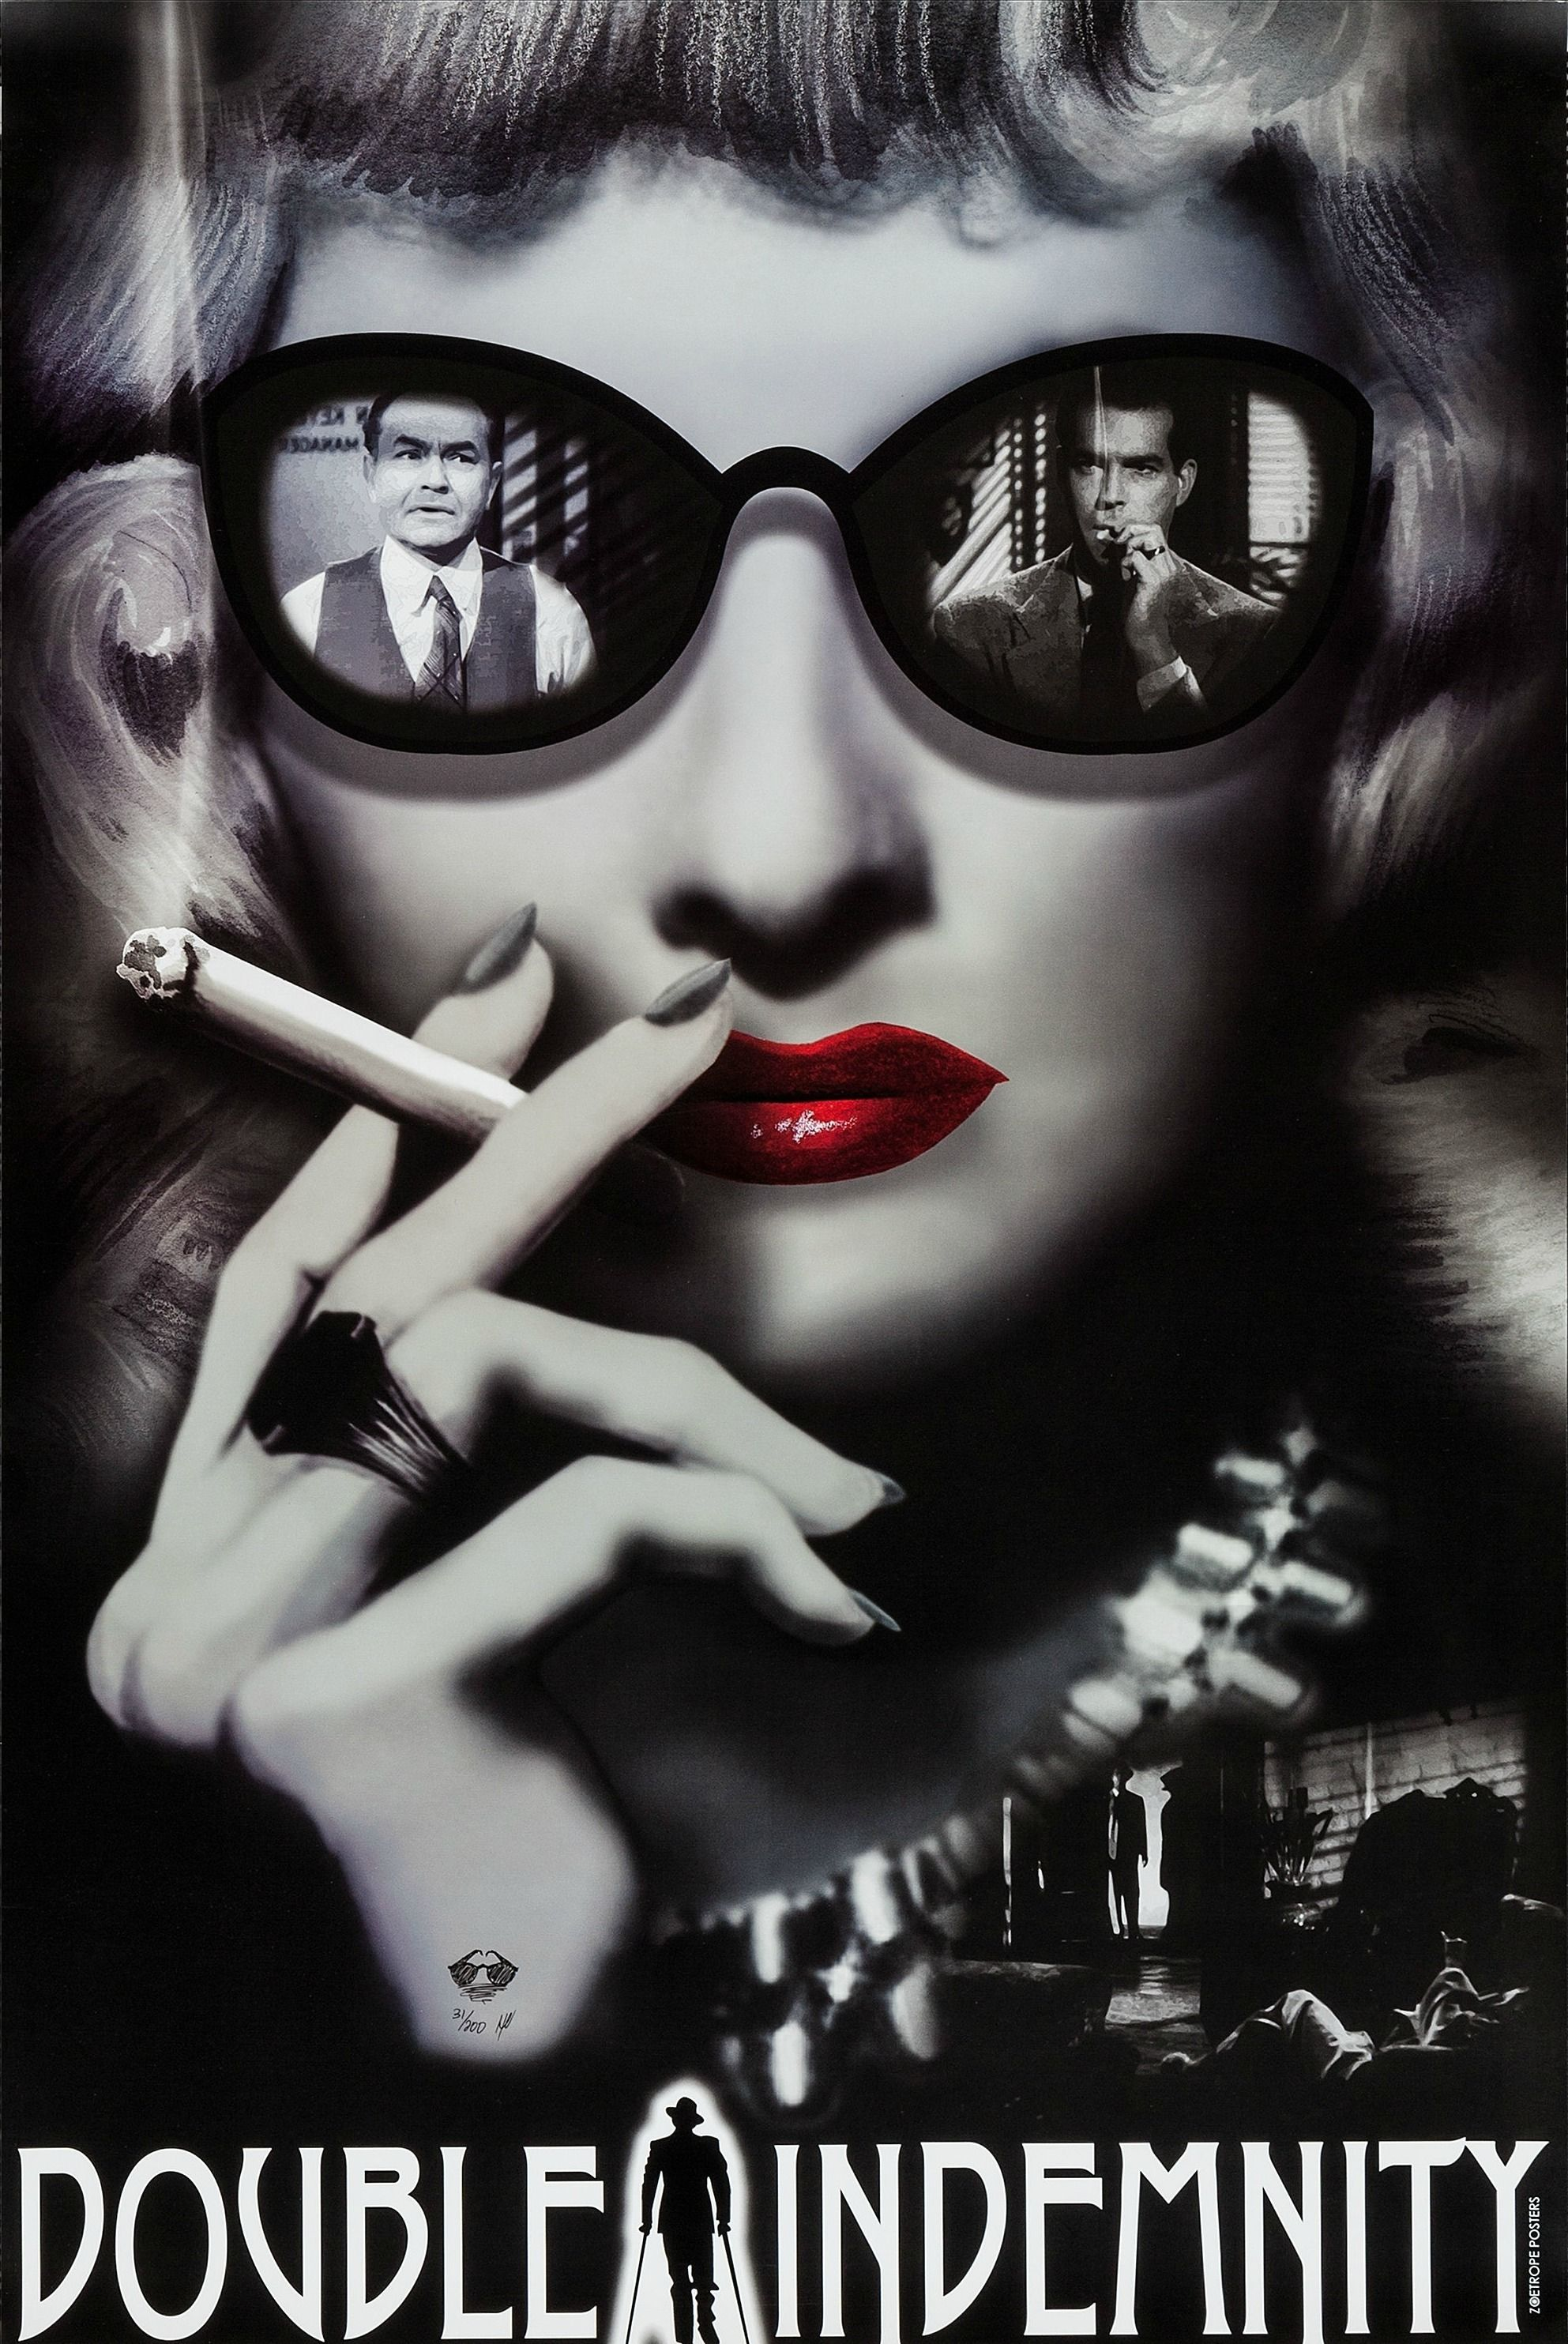 film noir in the maltese falcon and double indemnity Film noir style: the maltese falcon (1941) by film noir buff a life long interest with old movies the cast of villains who never say what they mean and festoon the drama with enough double crosses to dizzy the casual observer.